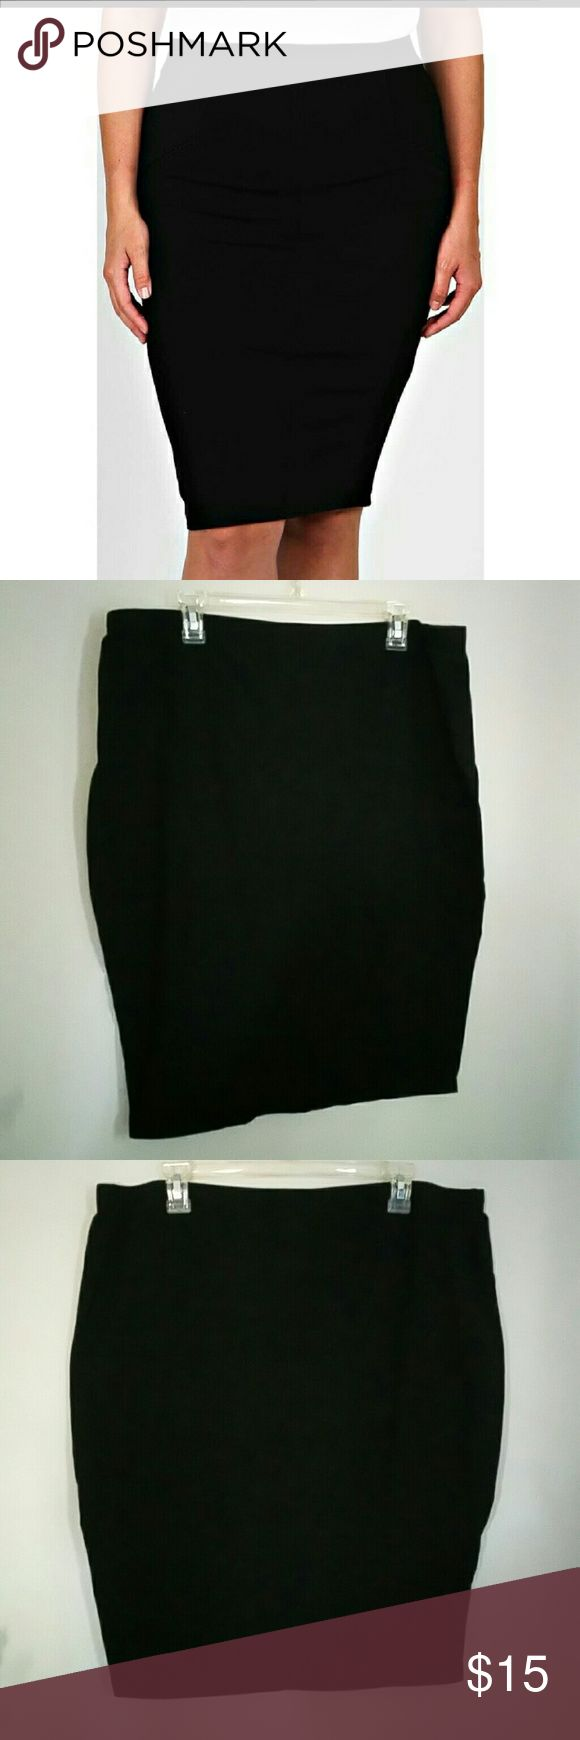 """BNWOT- FADED GLORY- PENCIL BODY CON SKIRT Brand new Waist not stretched is 19"""" laying flat  Length 25 1/2""""  Black All stretch, n very flattering Faded Glory Skirts"""